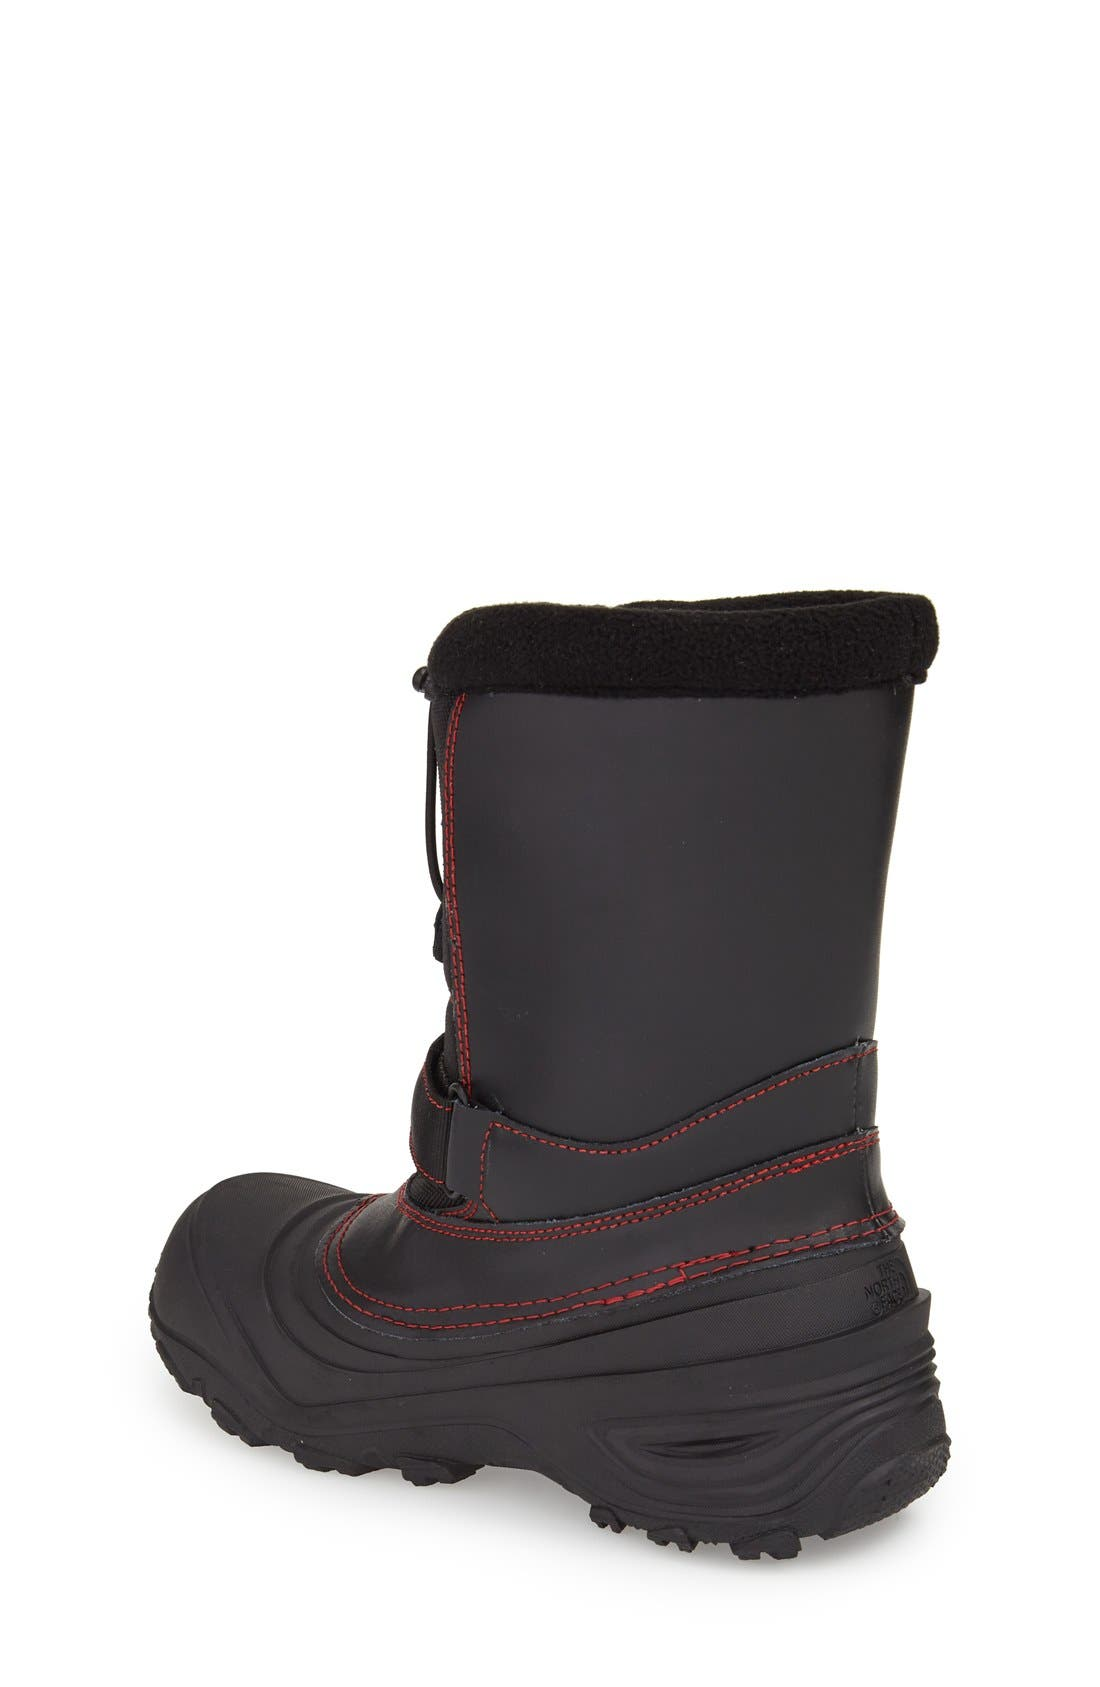 Alternate Image 2  - The North Face 'Alpenglow Extreme II' Waterproof Snow Boot (Toddler, Little Kid & Big Kid)